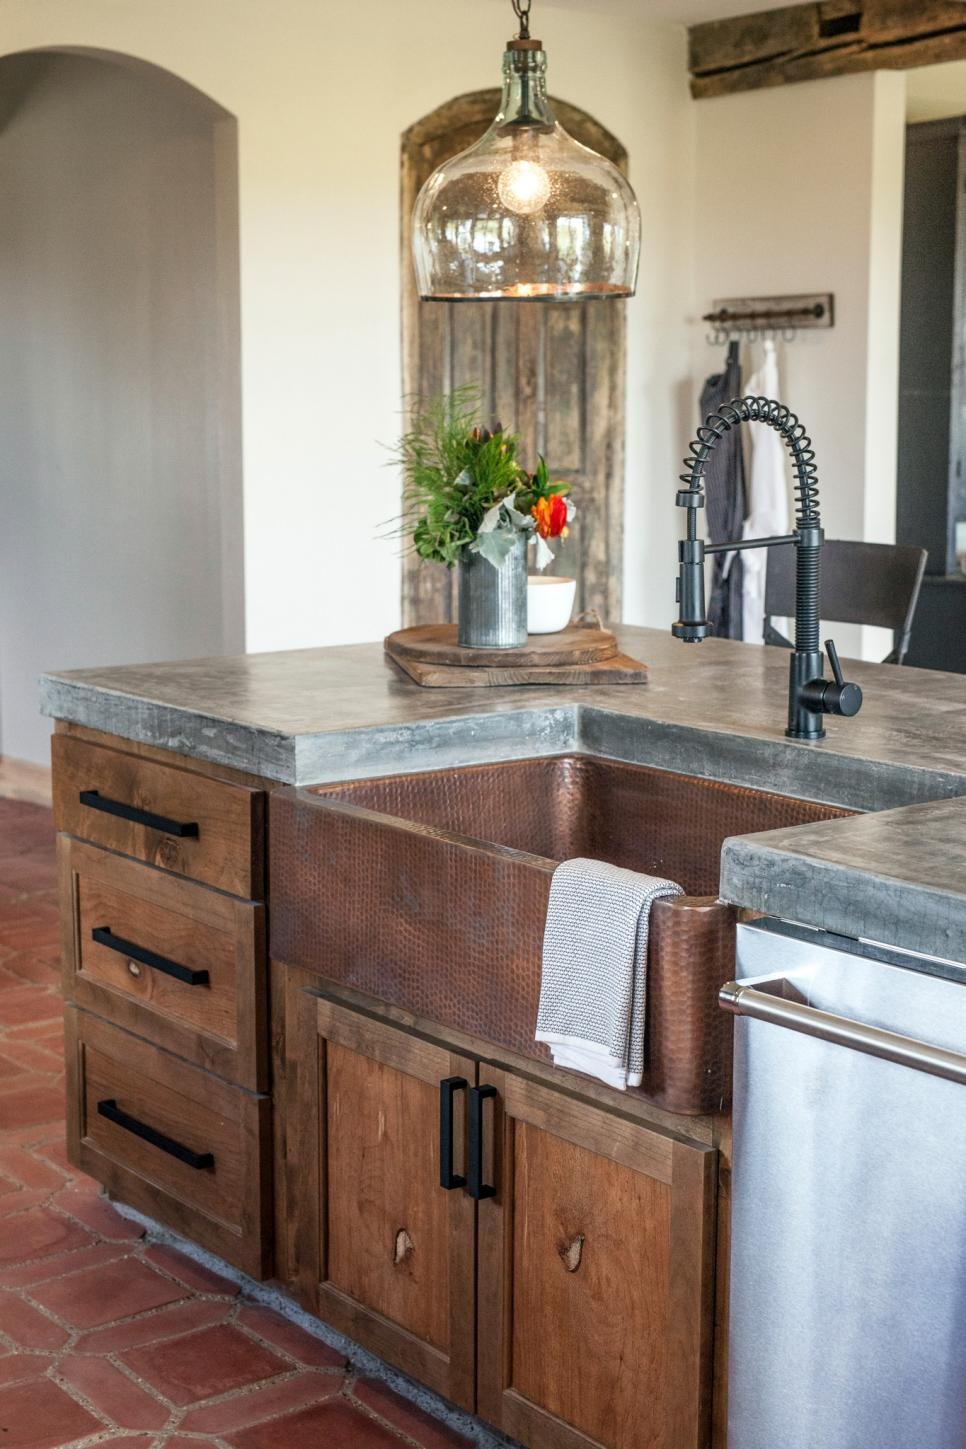 Fixer upper home kitchen - Hgtv Image Via Hgtv Fixer Upper